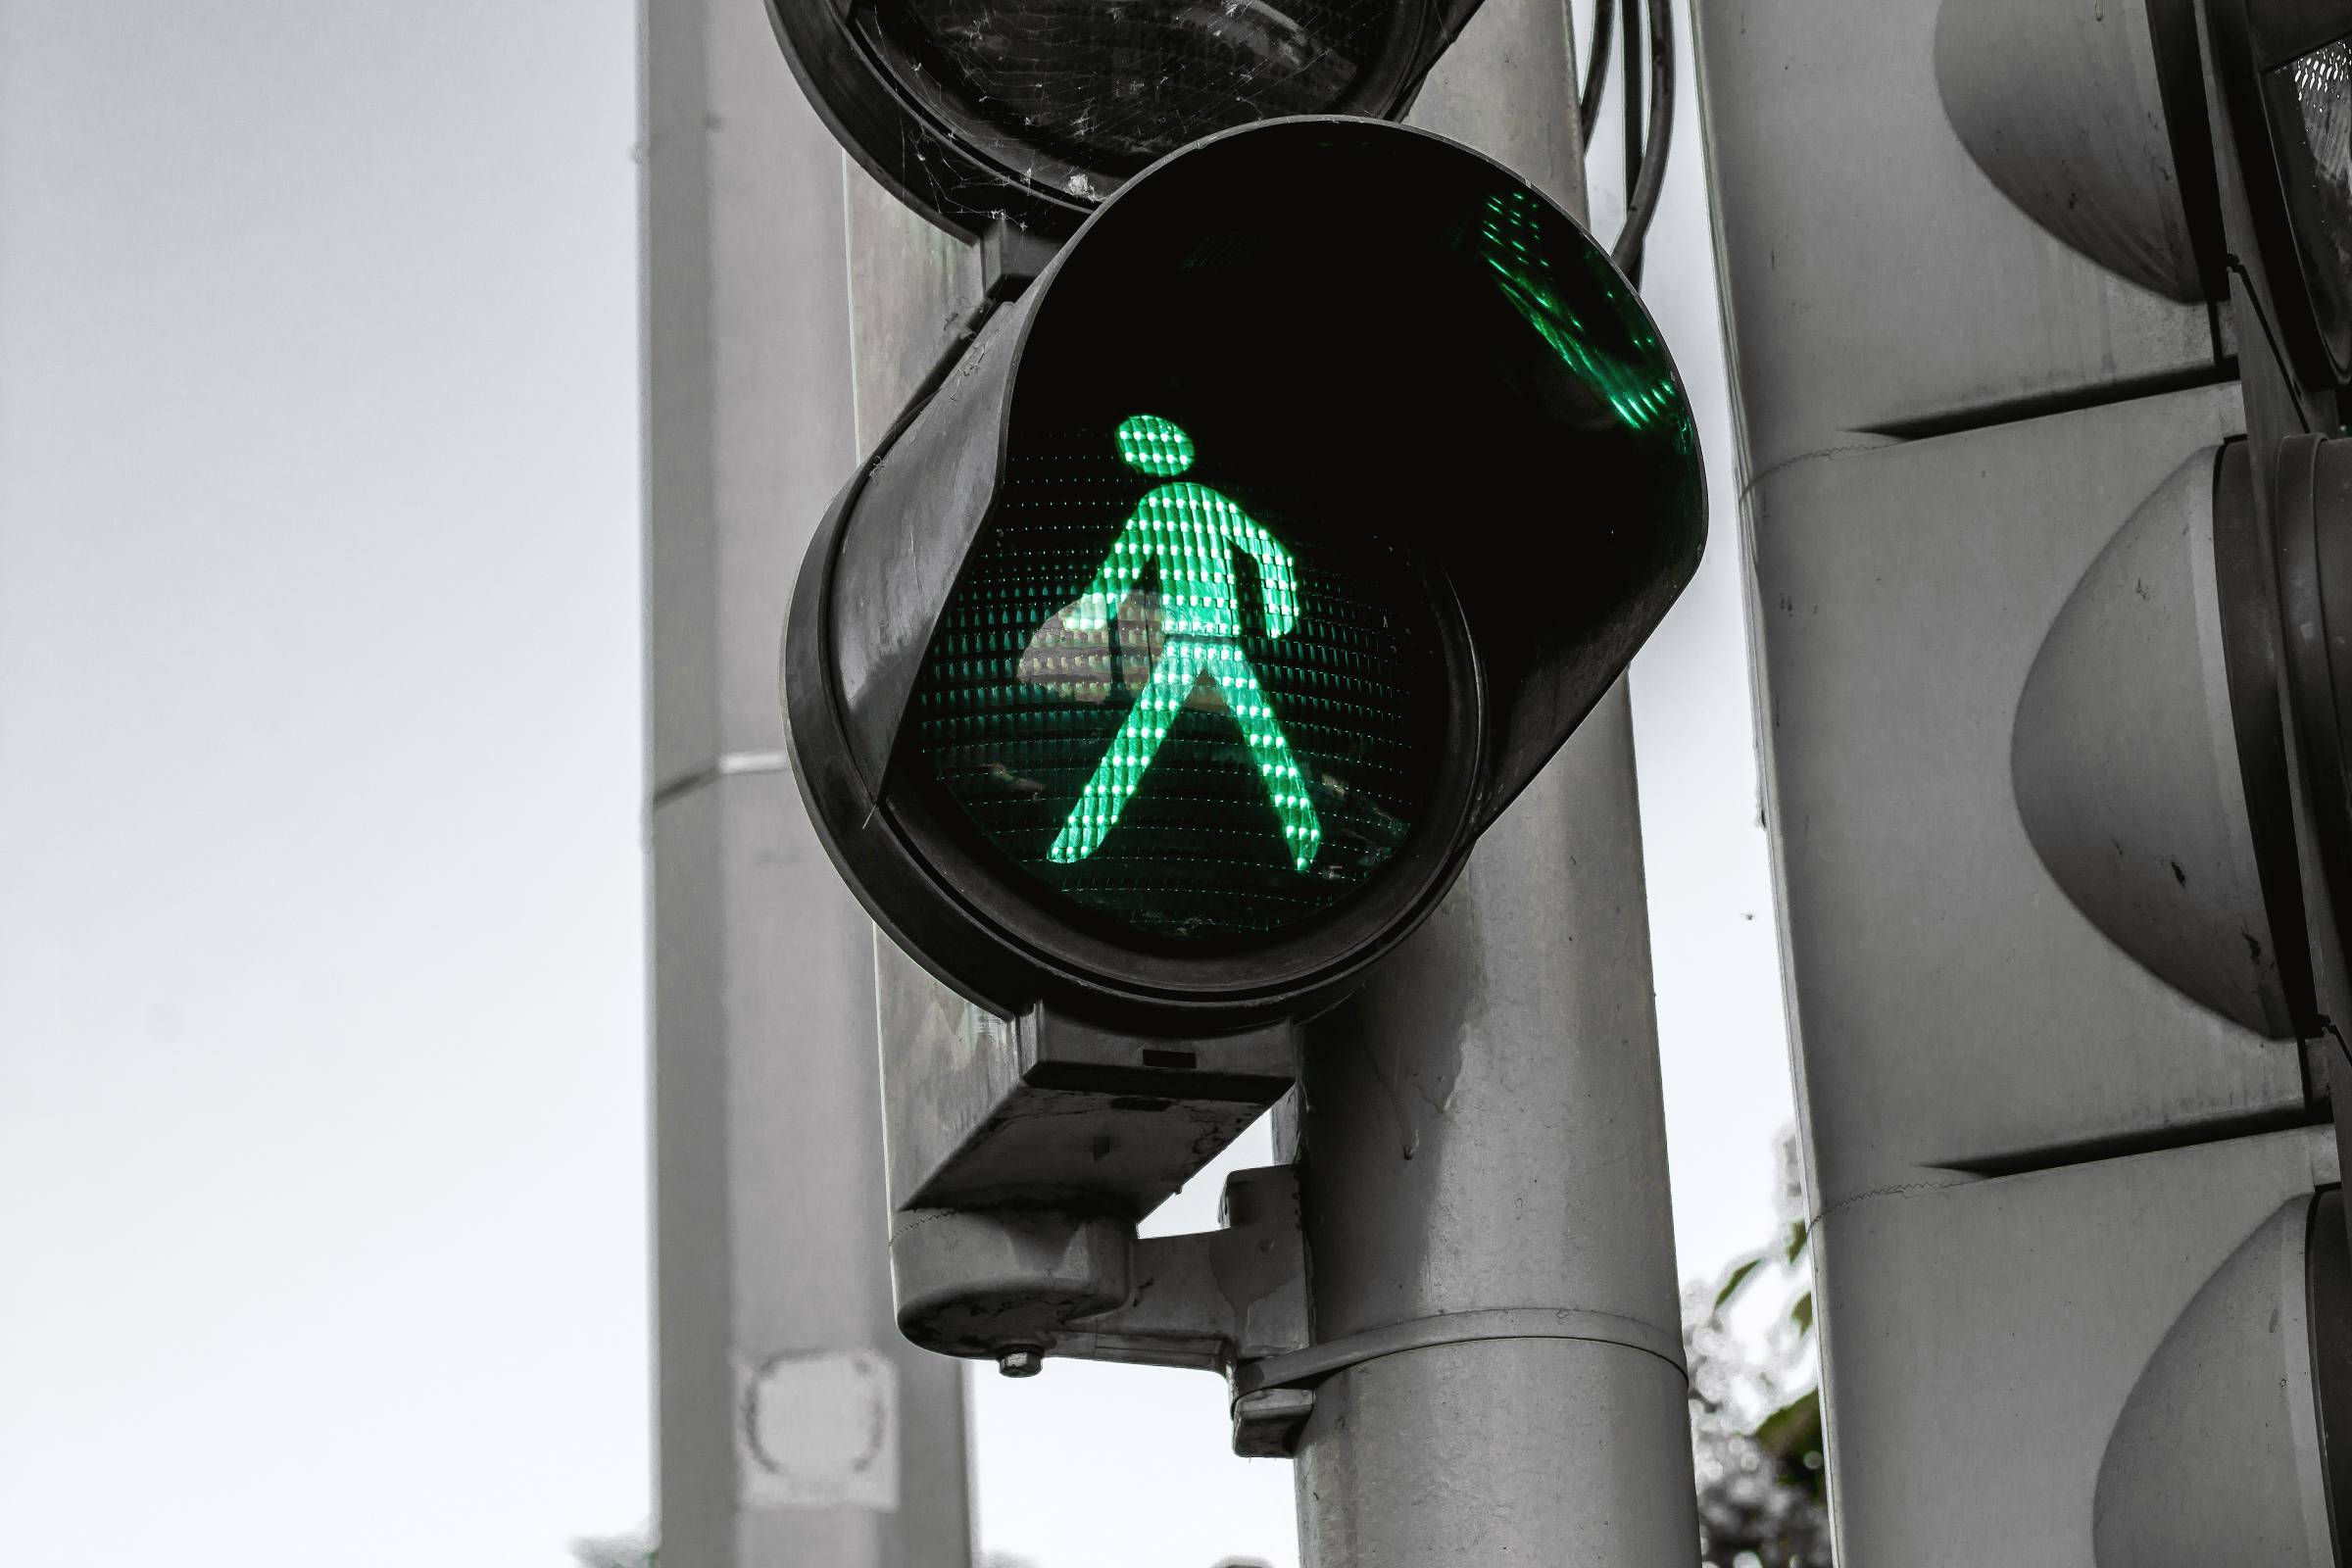 Traffic light walk signal